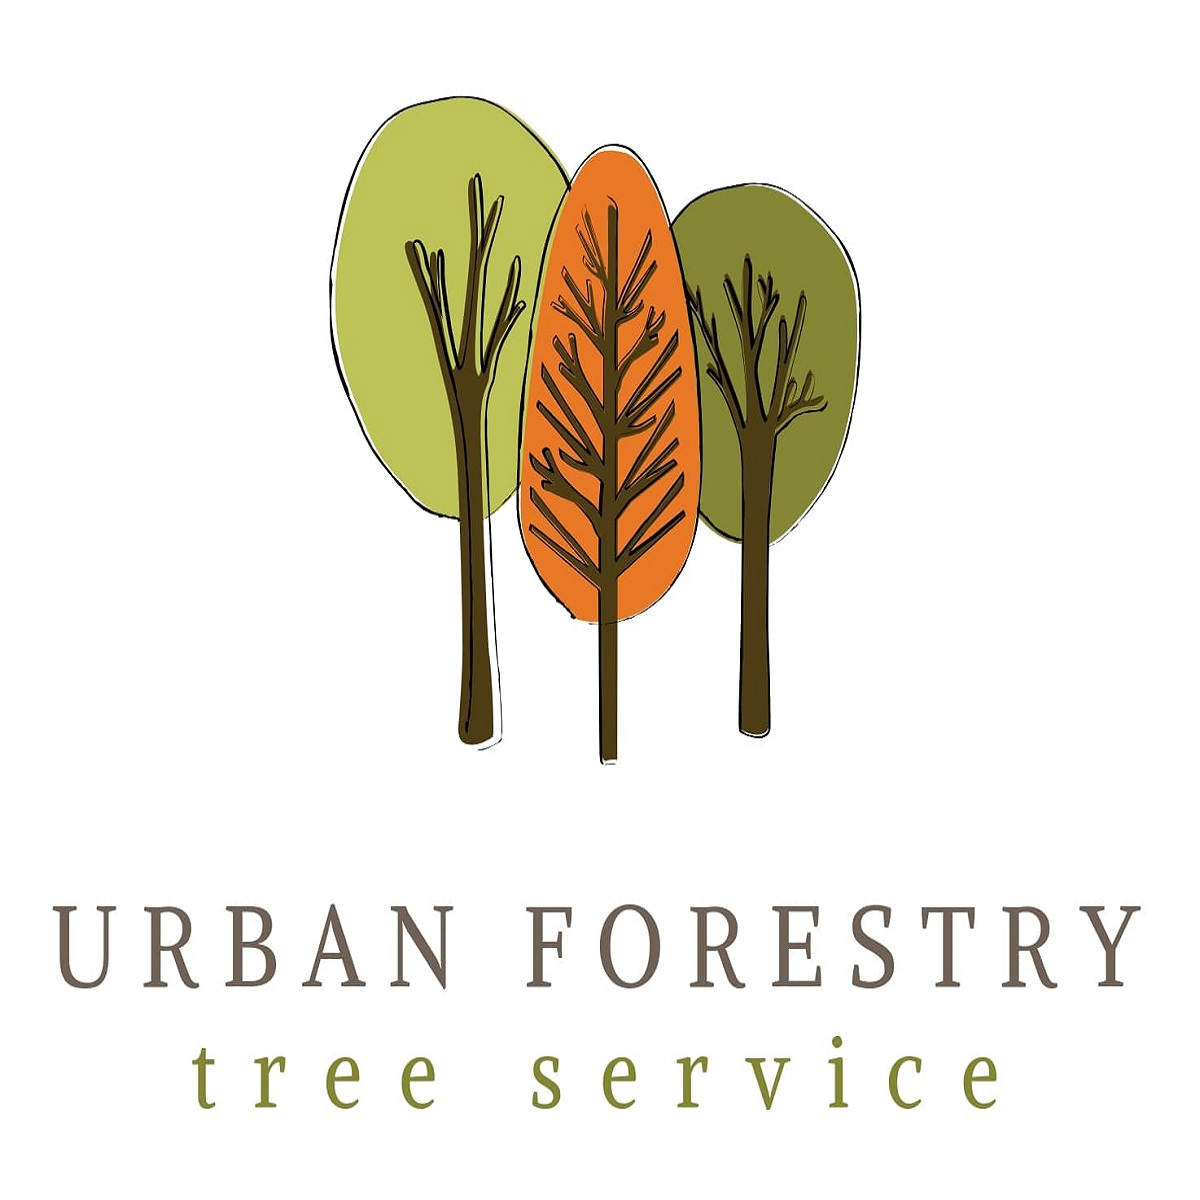 Urban Forestry Tree Service primary image